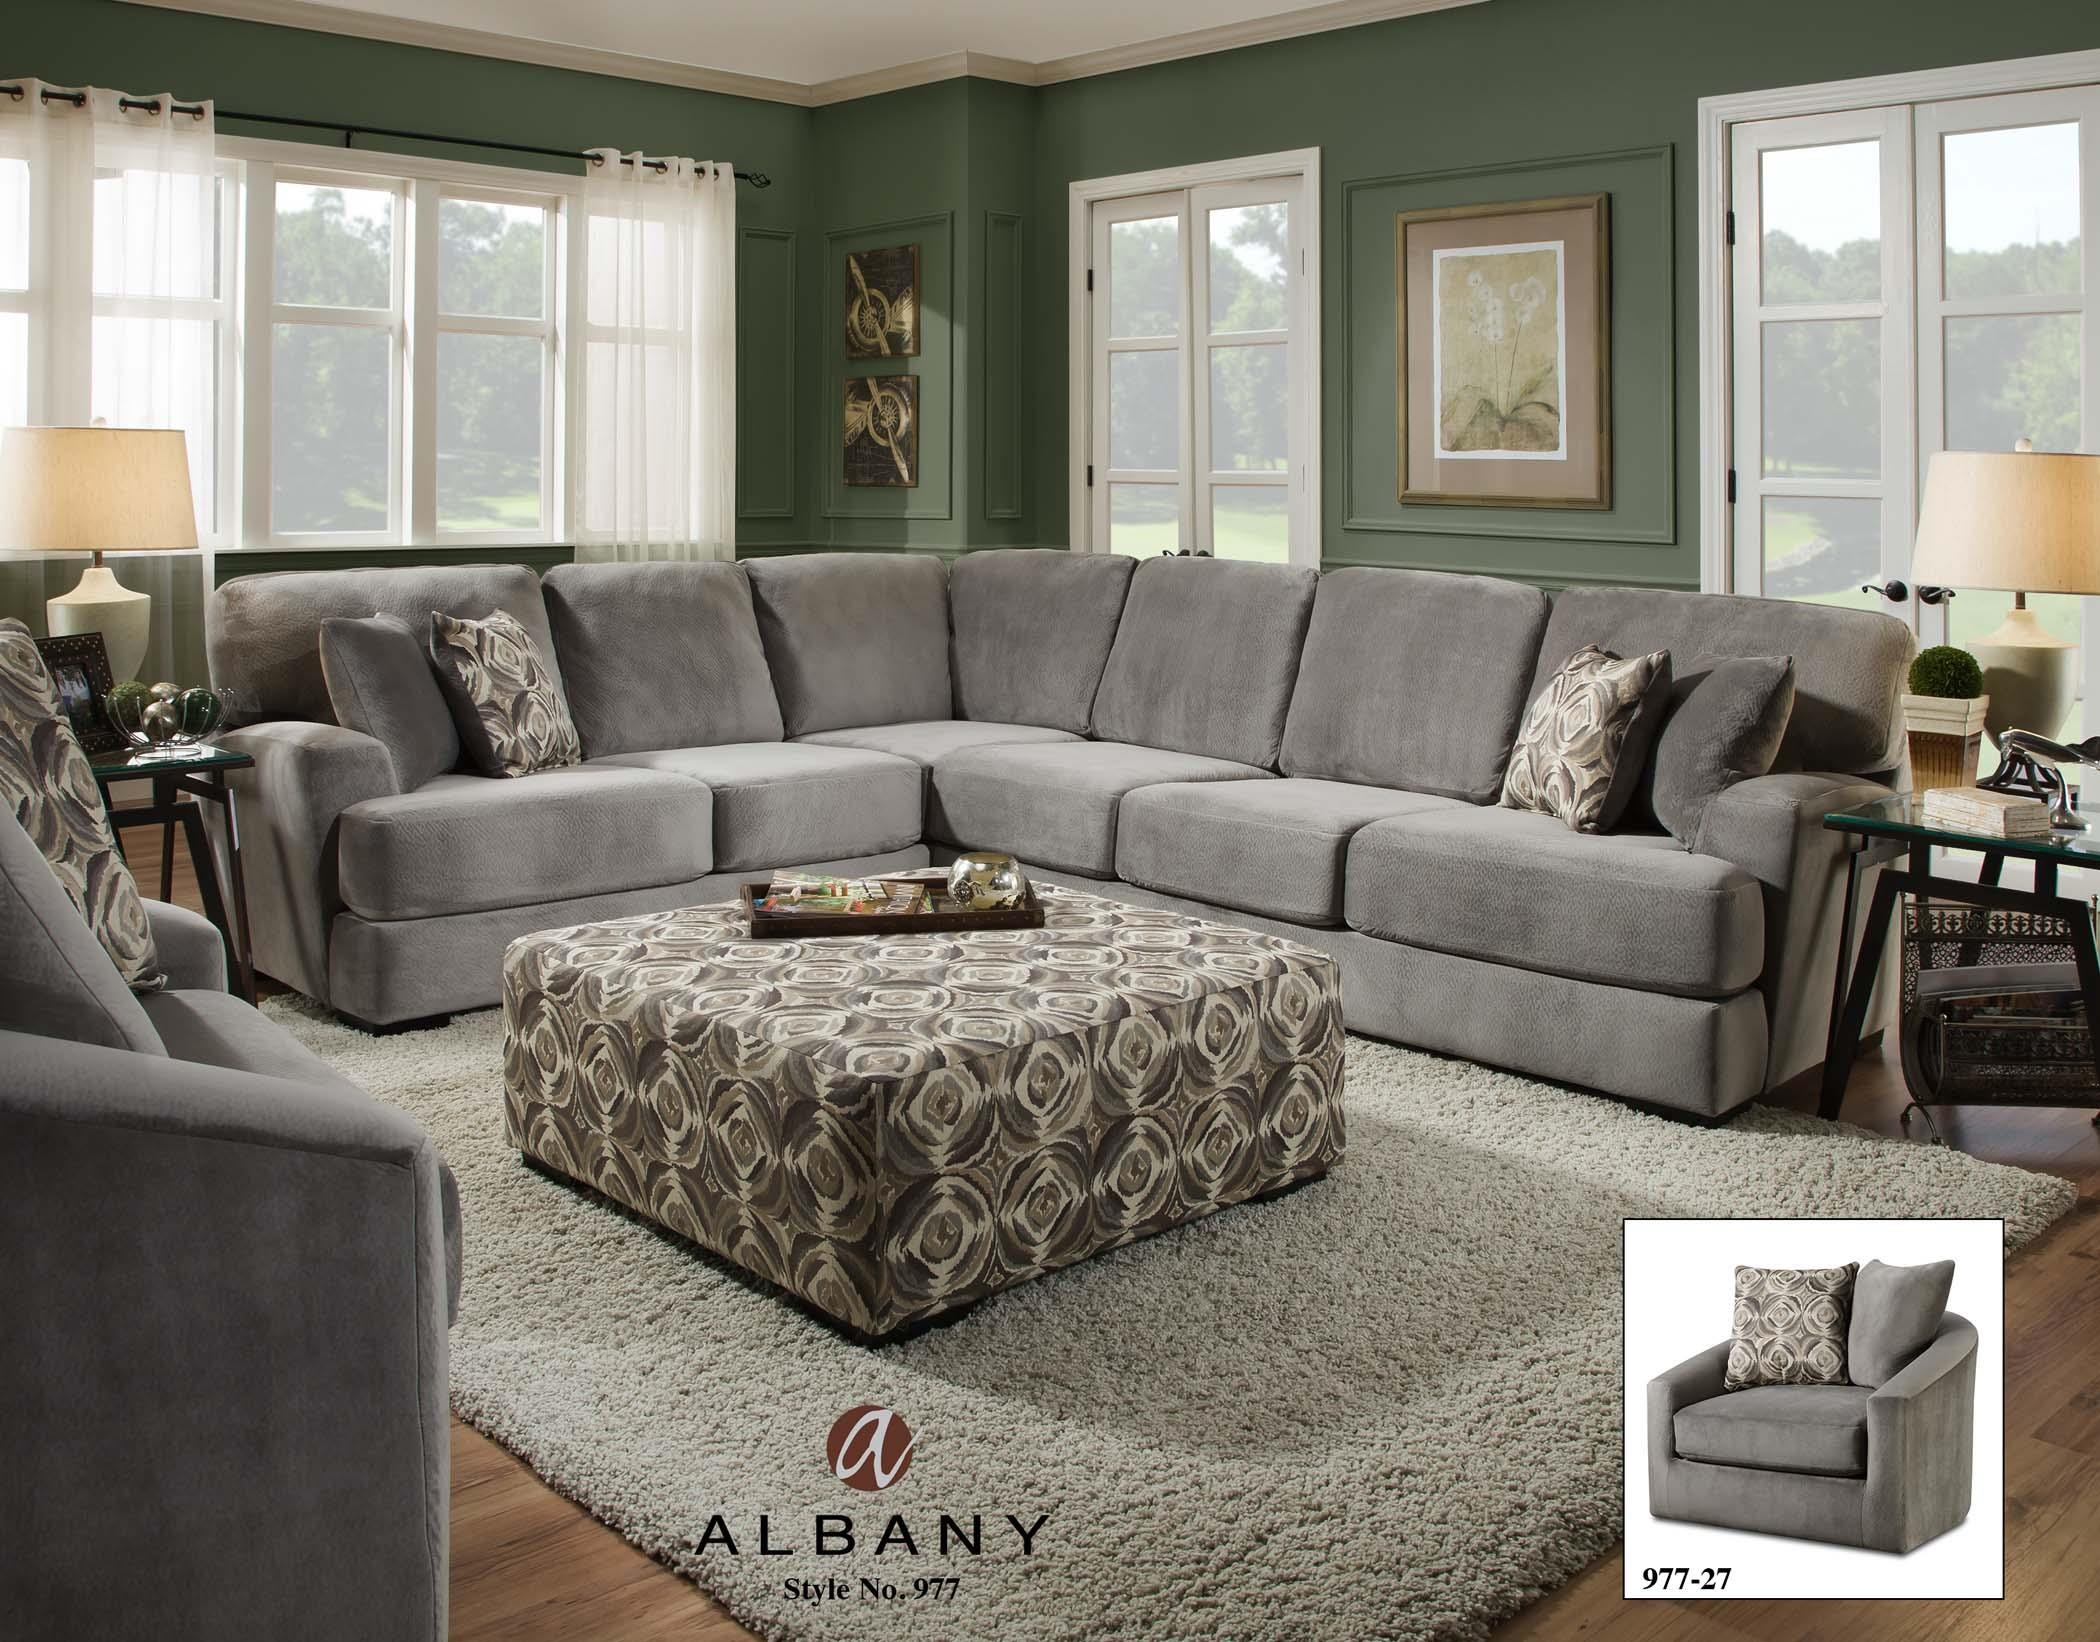 Incroyable Albany 977 Transitional Sectional Sofa   A1 Furniture U0026 Mattress   Sofa  Sectional